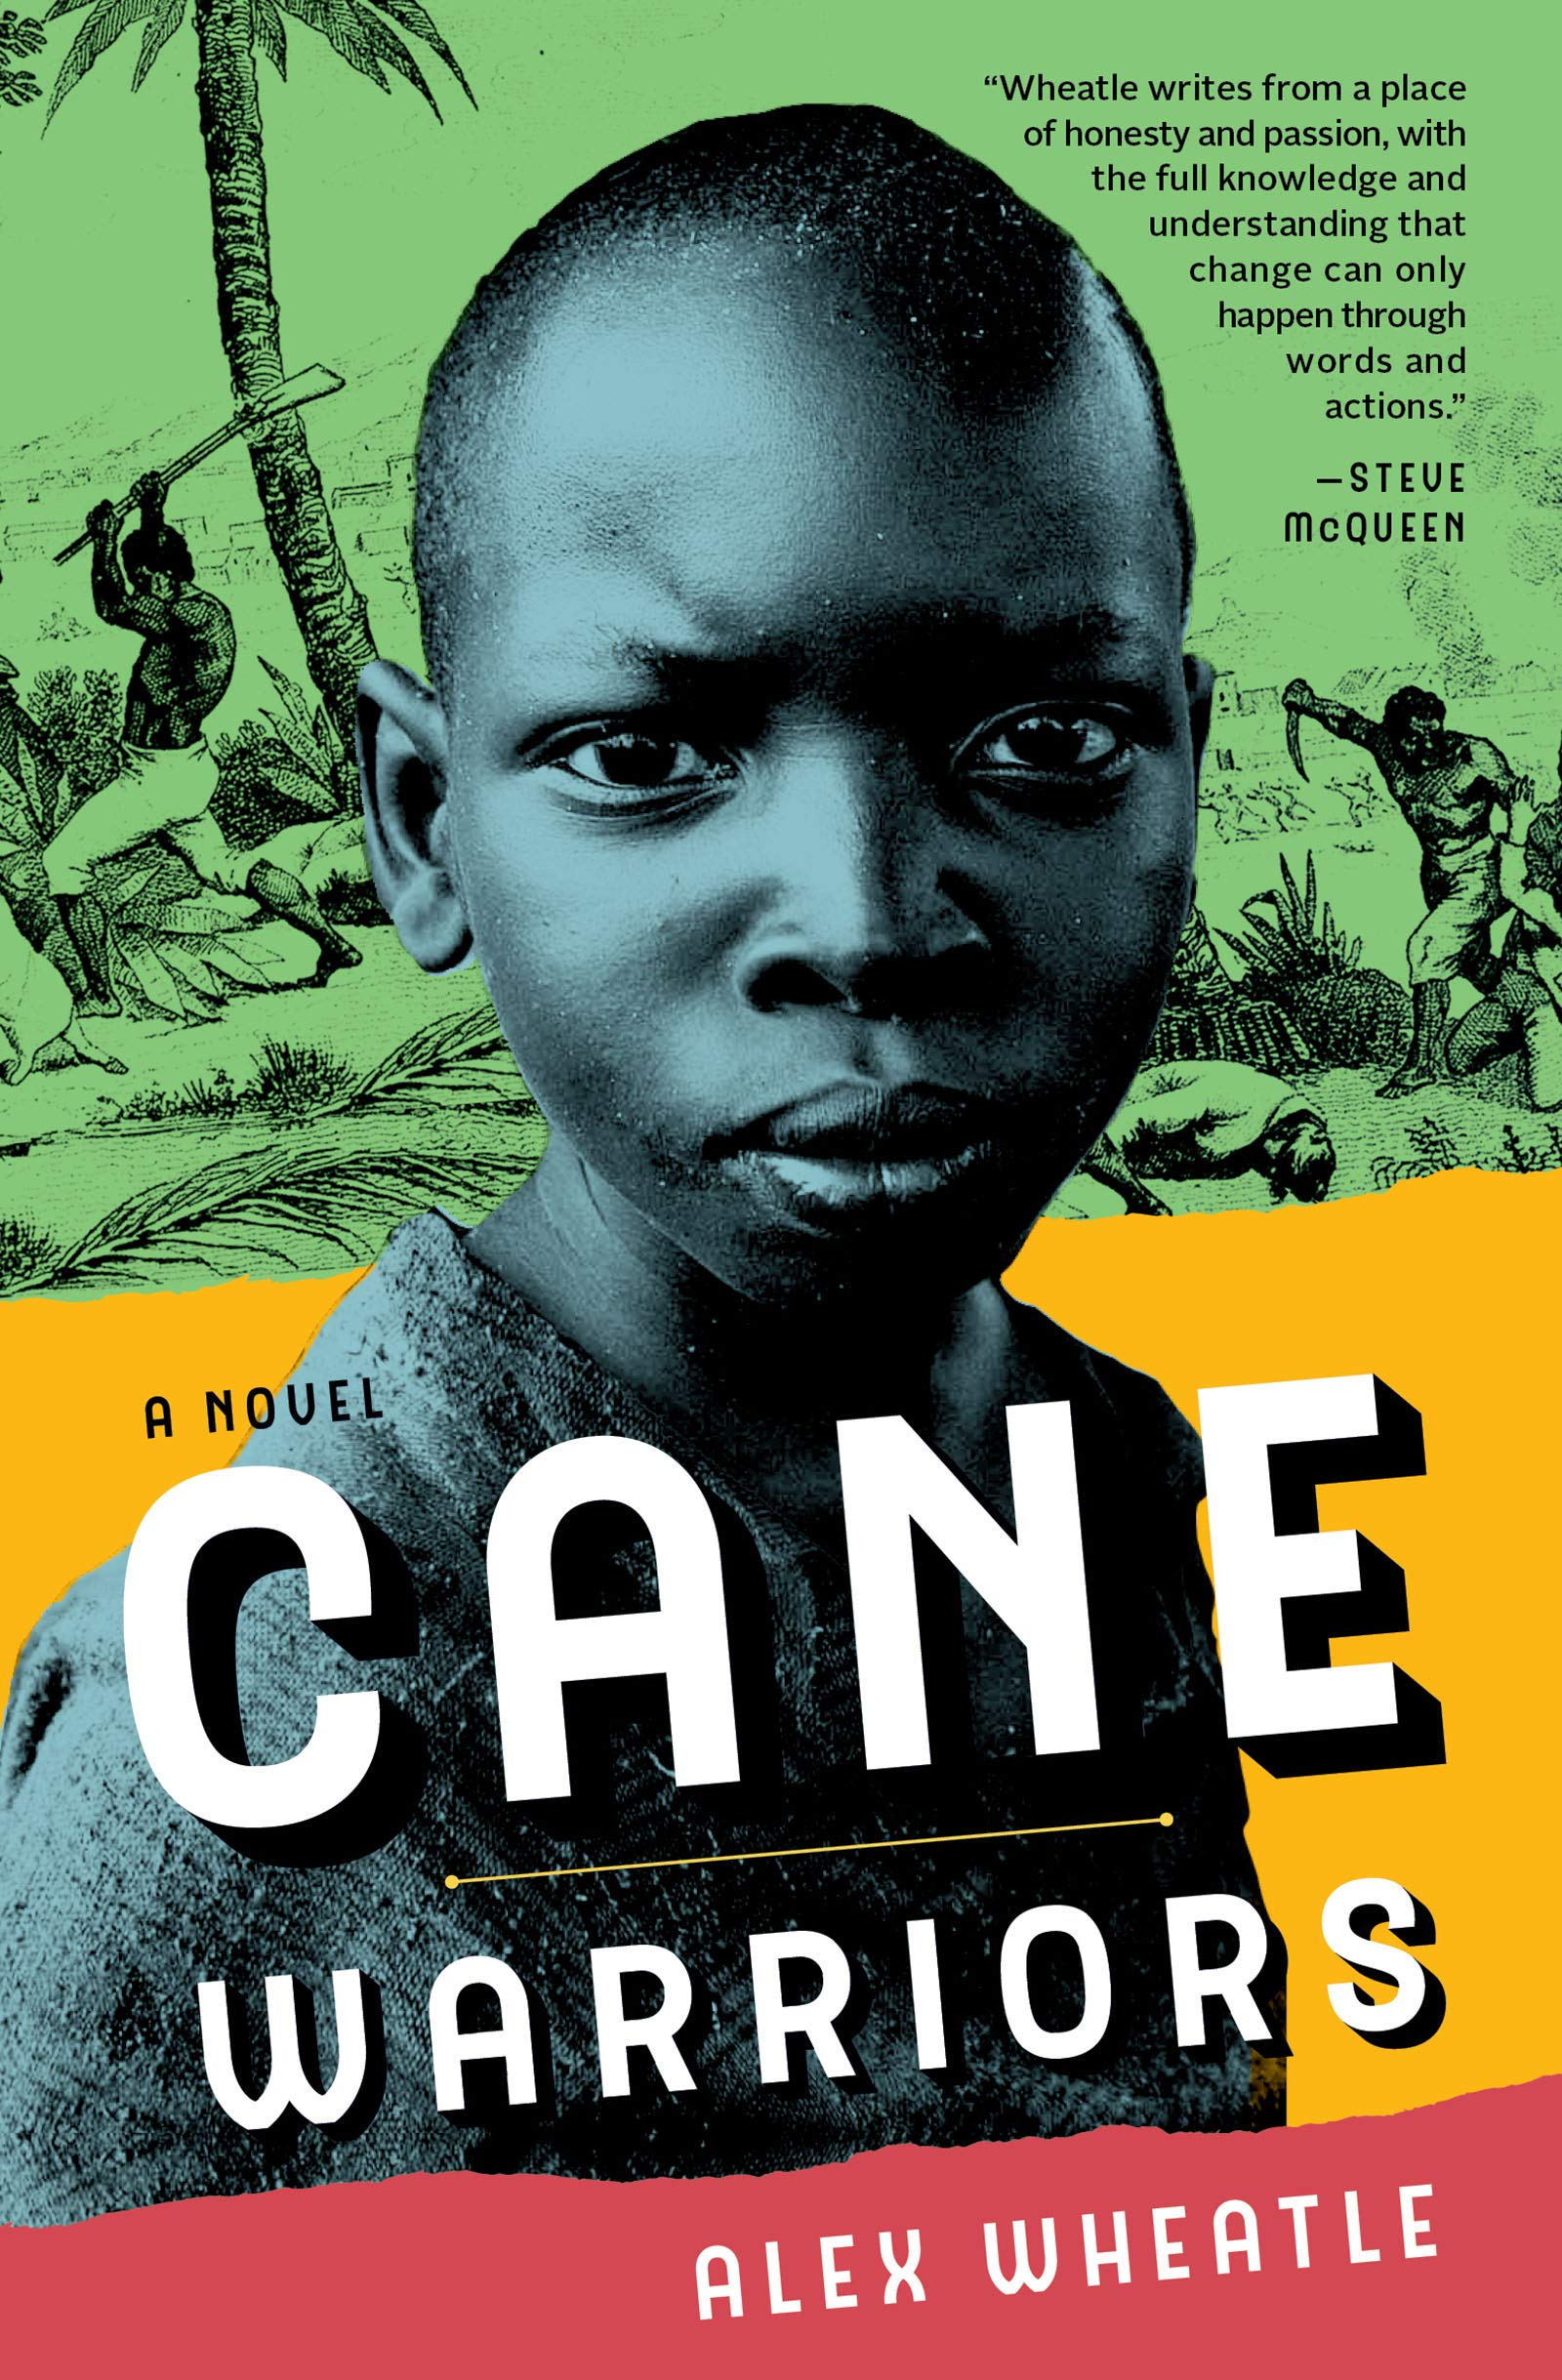 Cover art for Cane Warriors features a blue and black photograph of a young Black boy with an ink drawing of Tacky's Rebellion in the background.